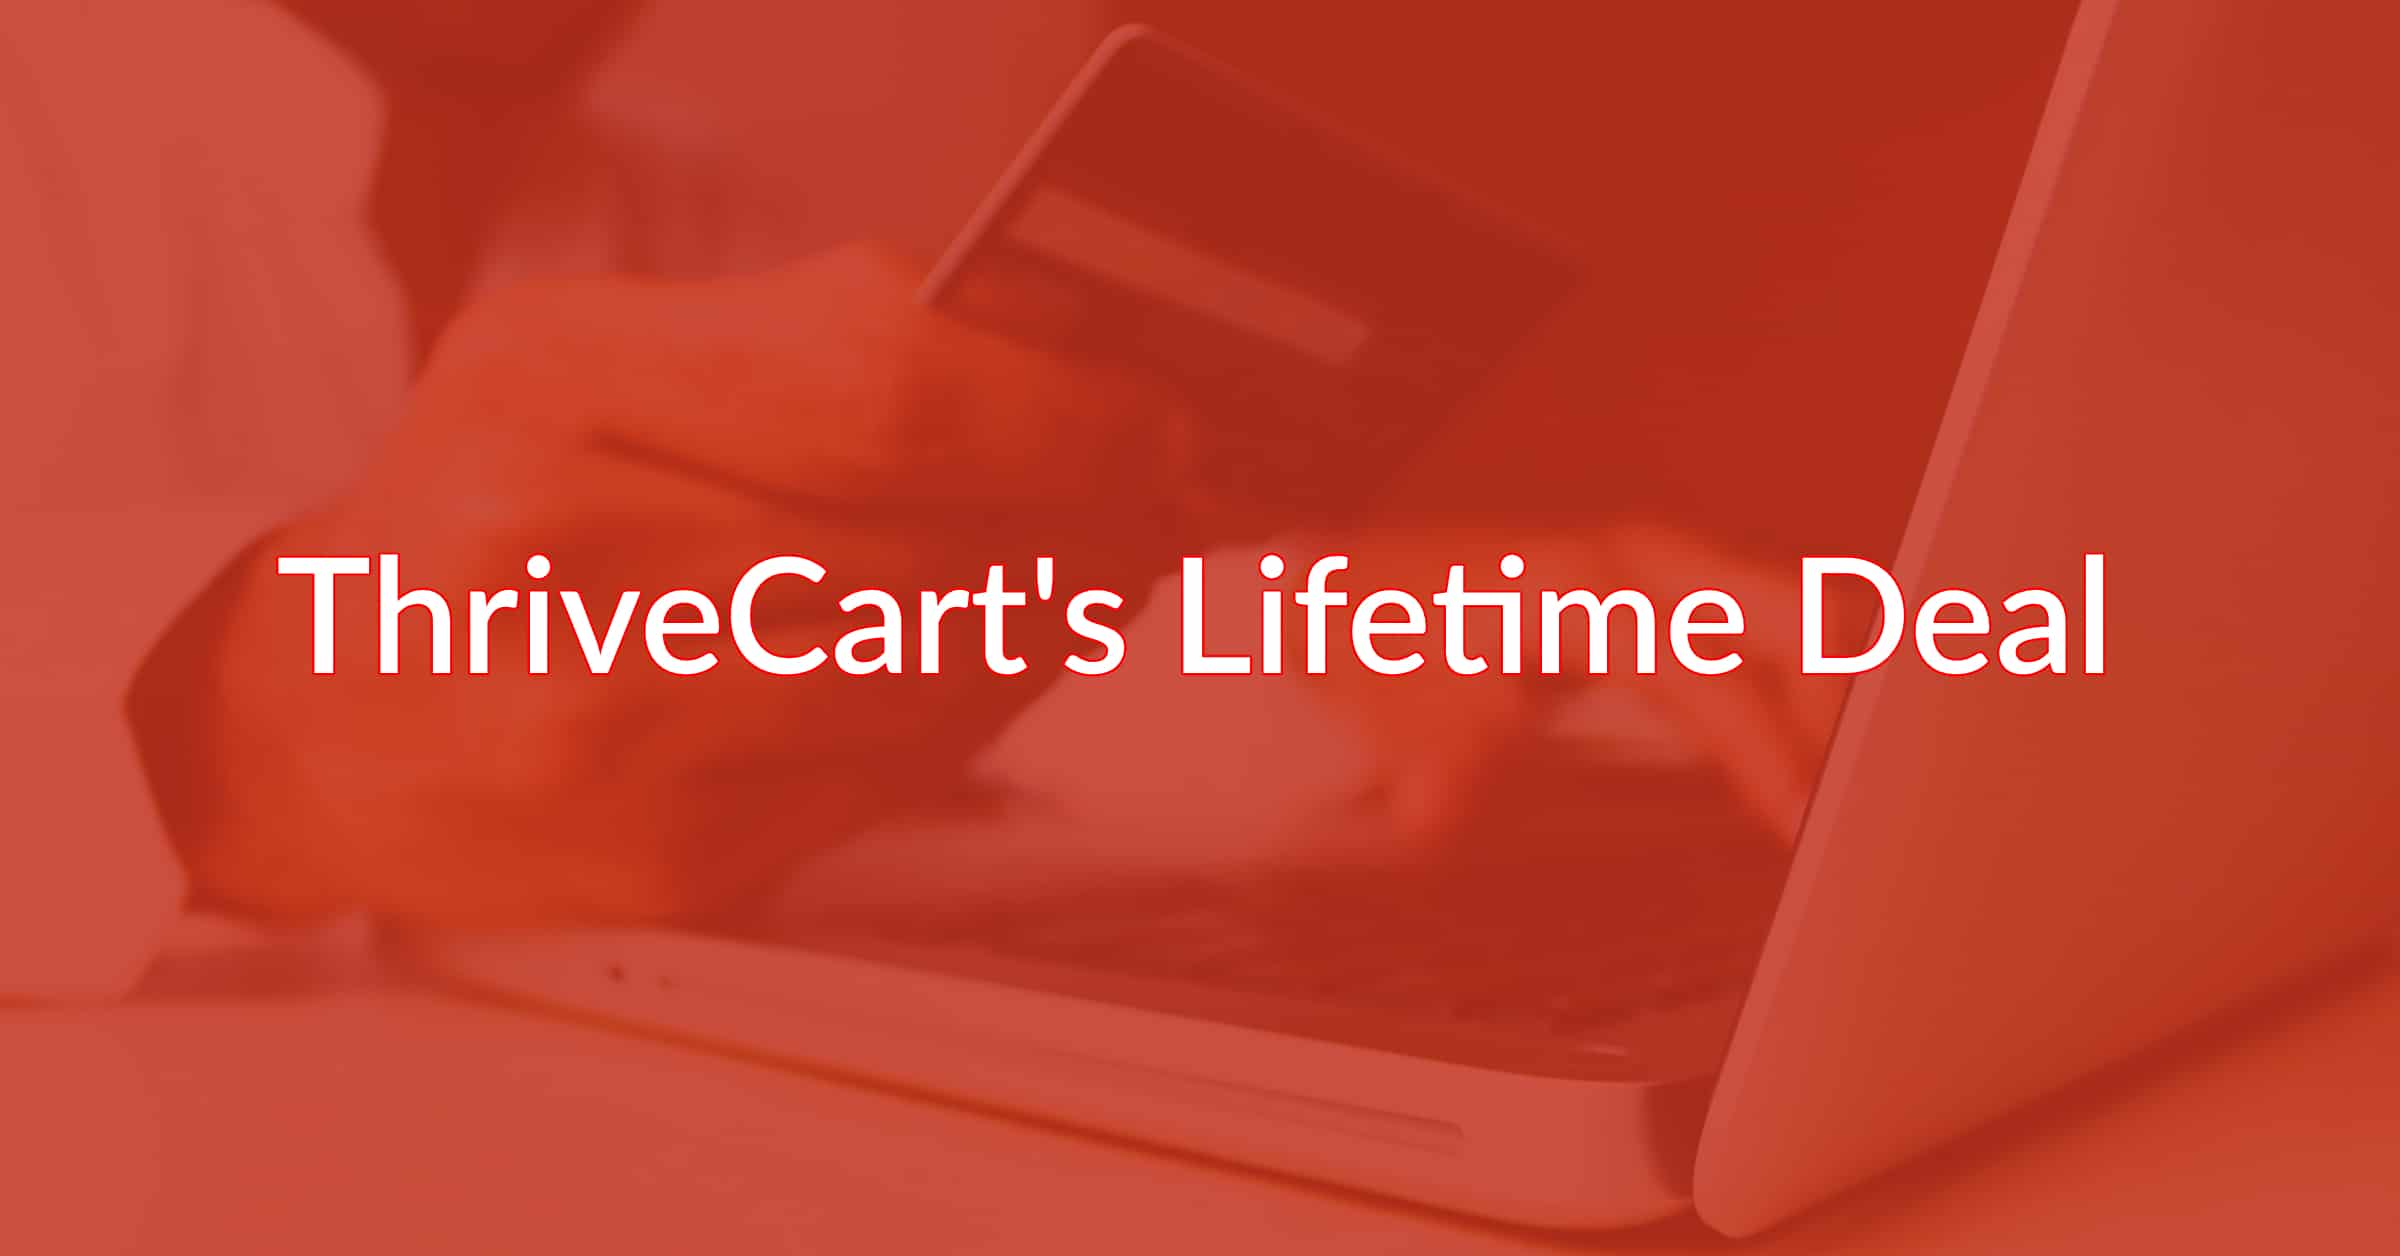 Is ThriveCart's Lifetime Deal Still Available?